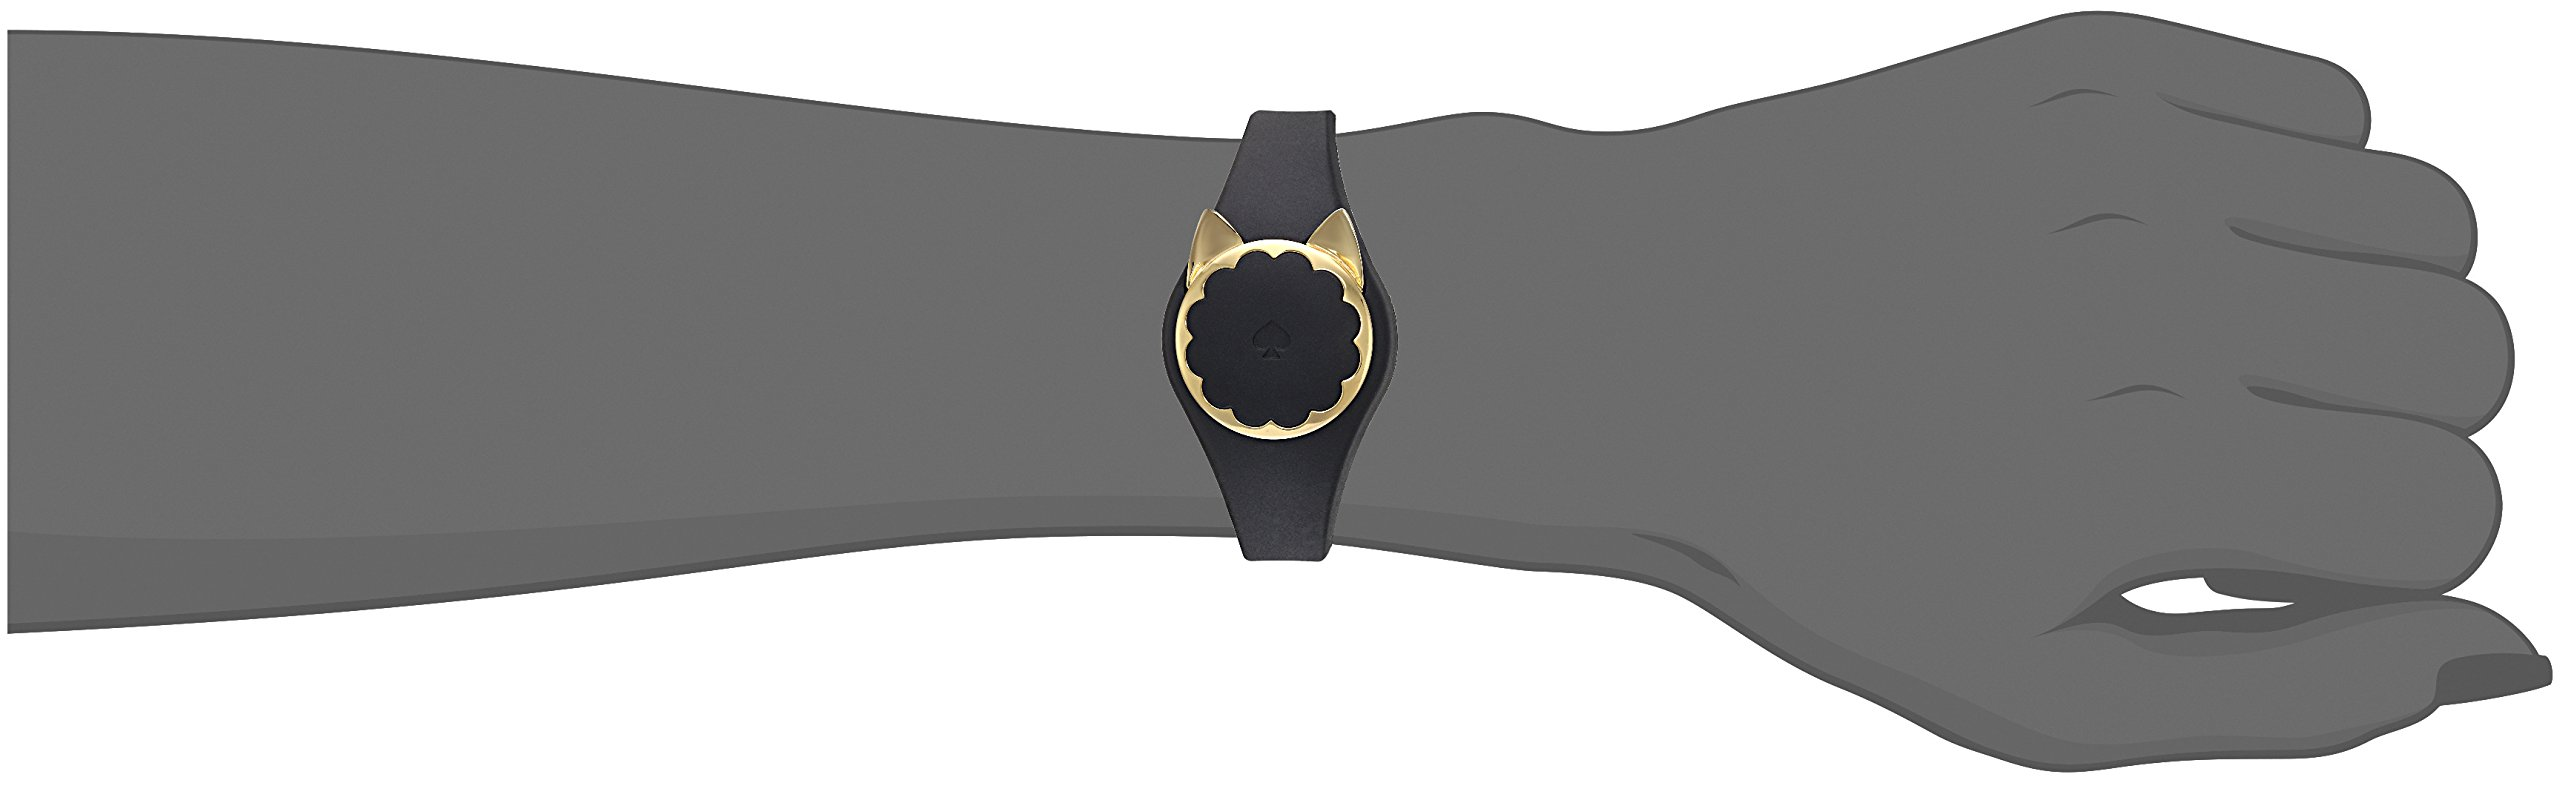 Kate Spade New York black cat scallop activity tracker by Kate Spade New York (Image #3)